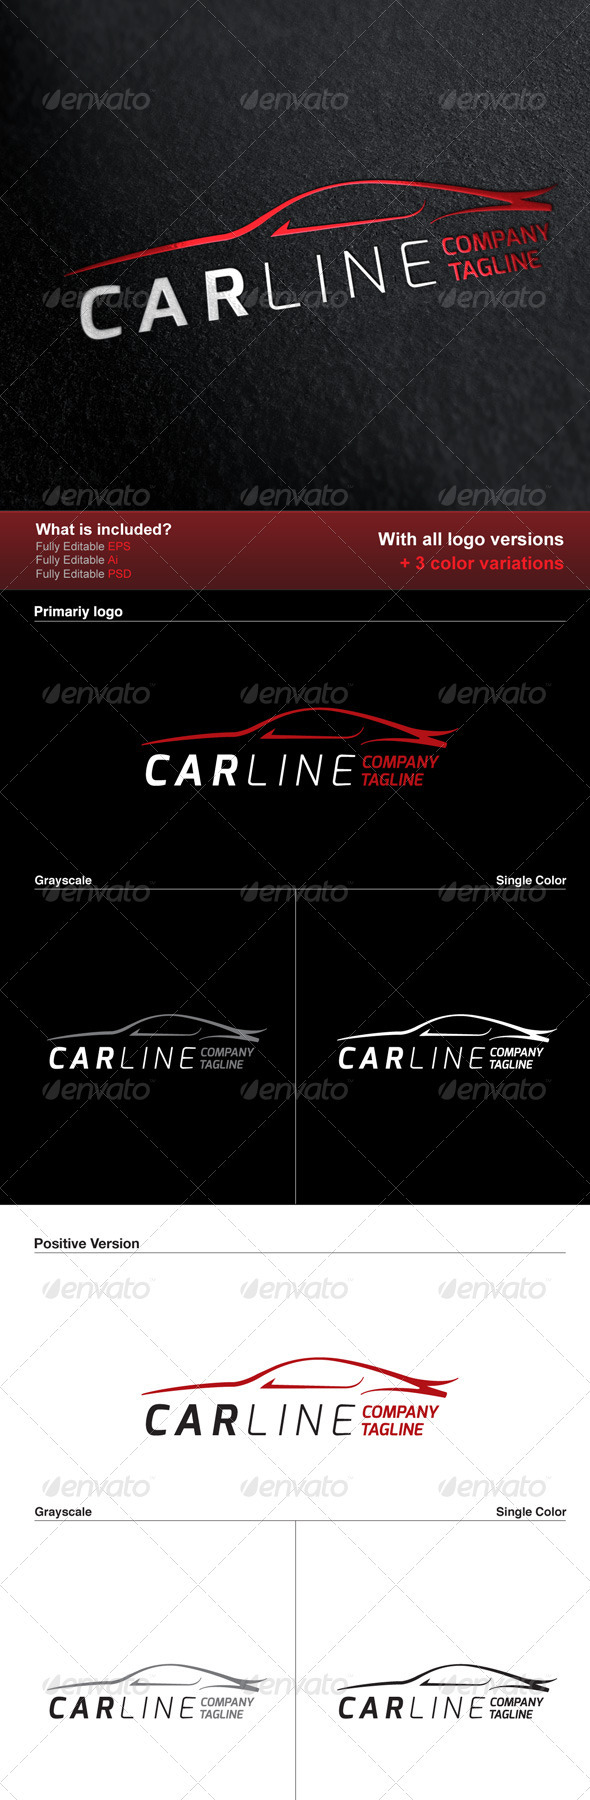 Logo Designs & Templates from GraphicRiver